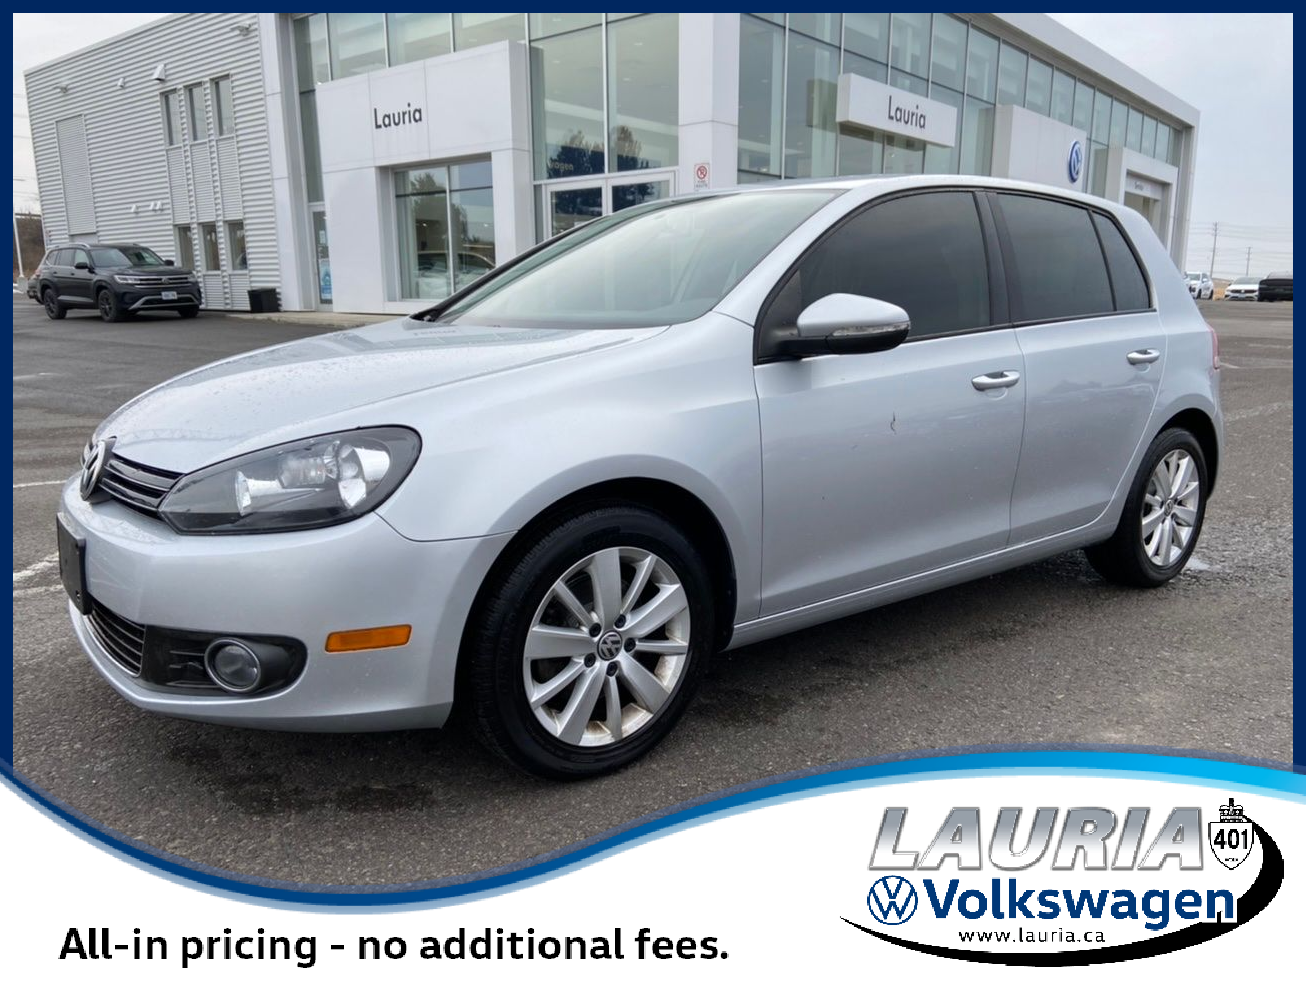 Pre-Owned 2013 Volkswagen Golf Comfortline TDI Manual - LOW KMS